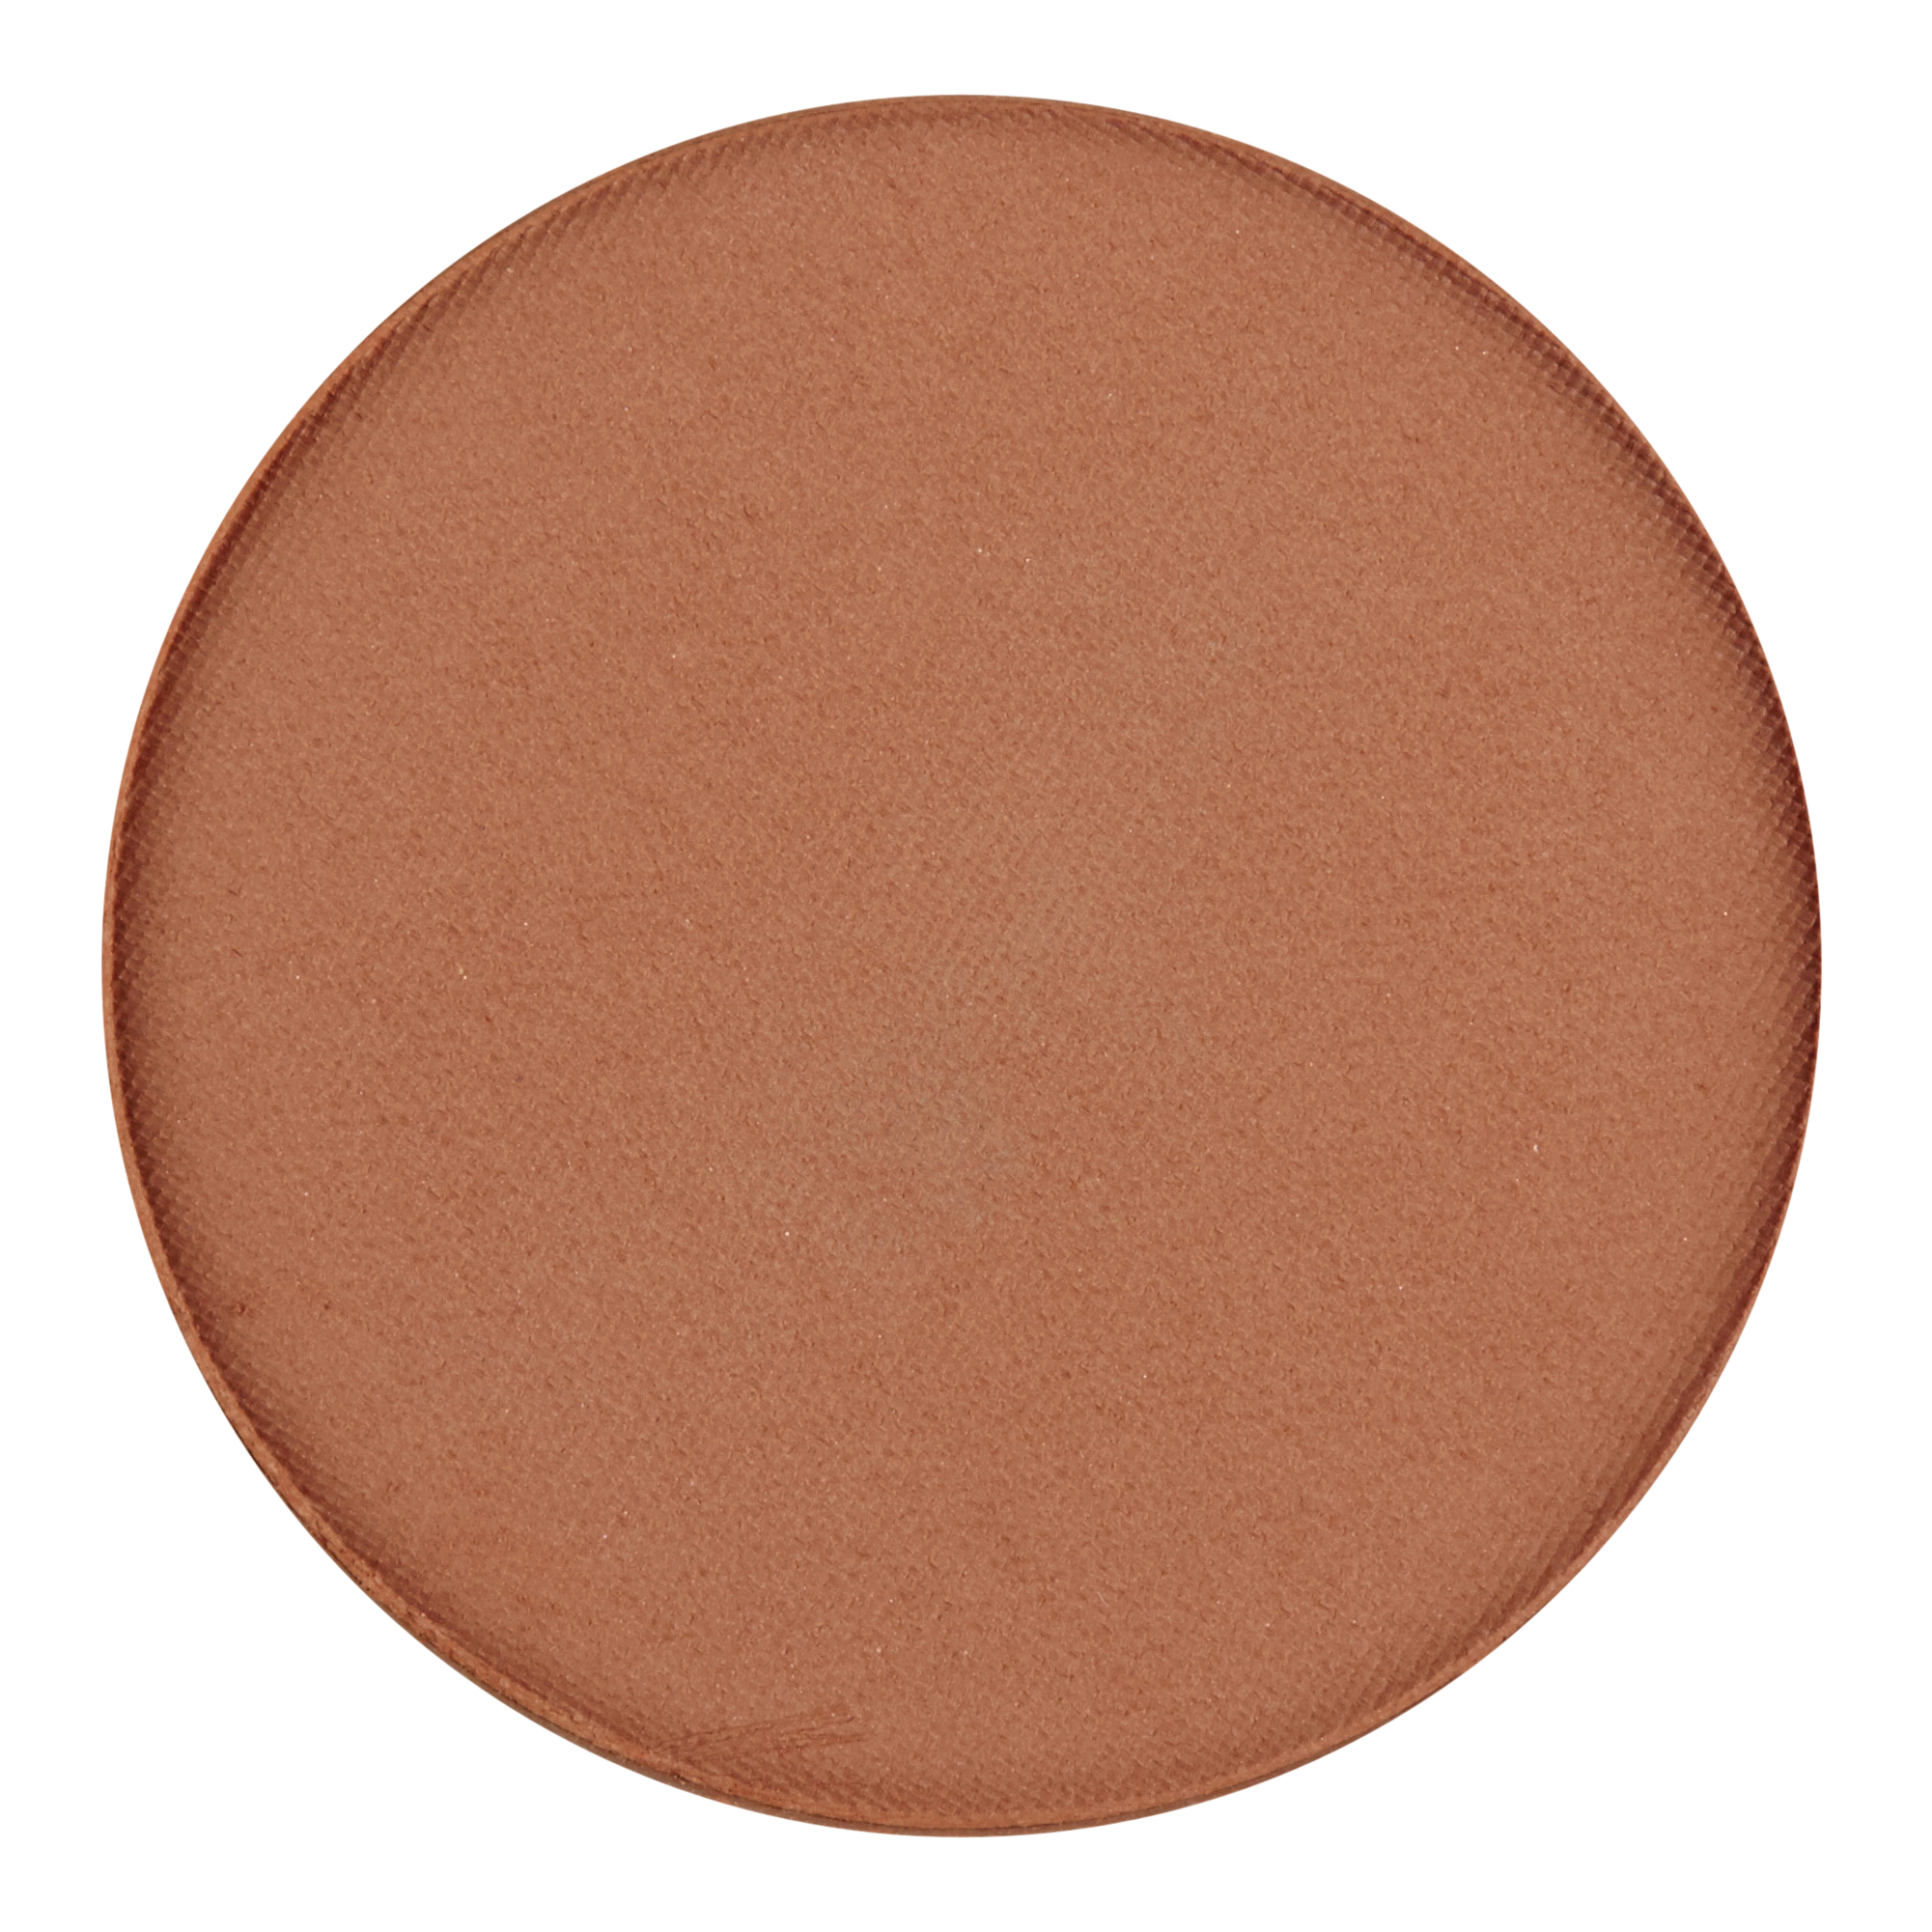 Contour Kit Refill Powder Terracotta